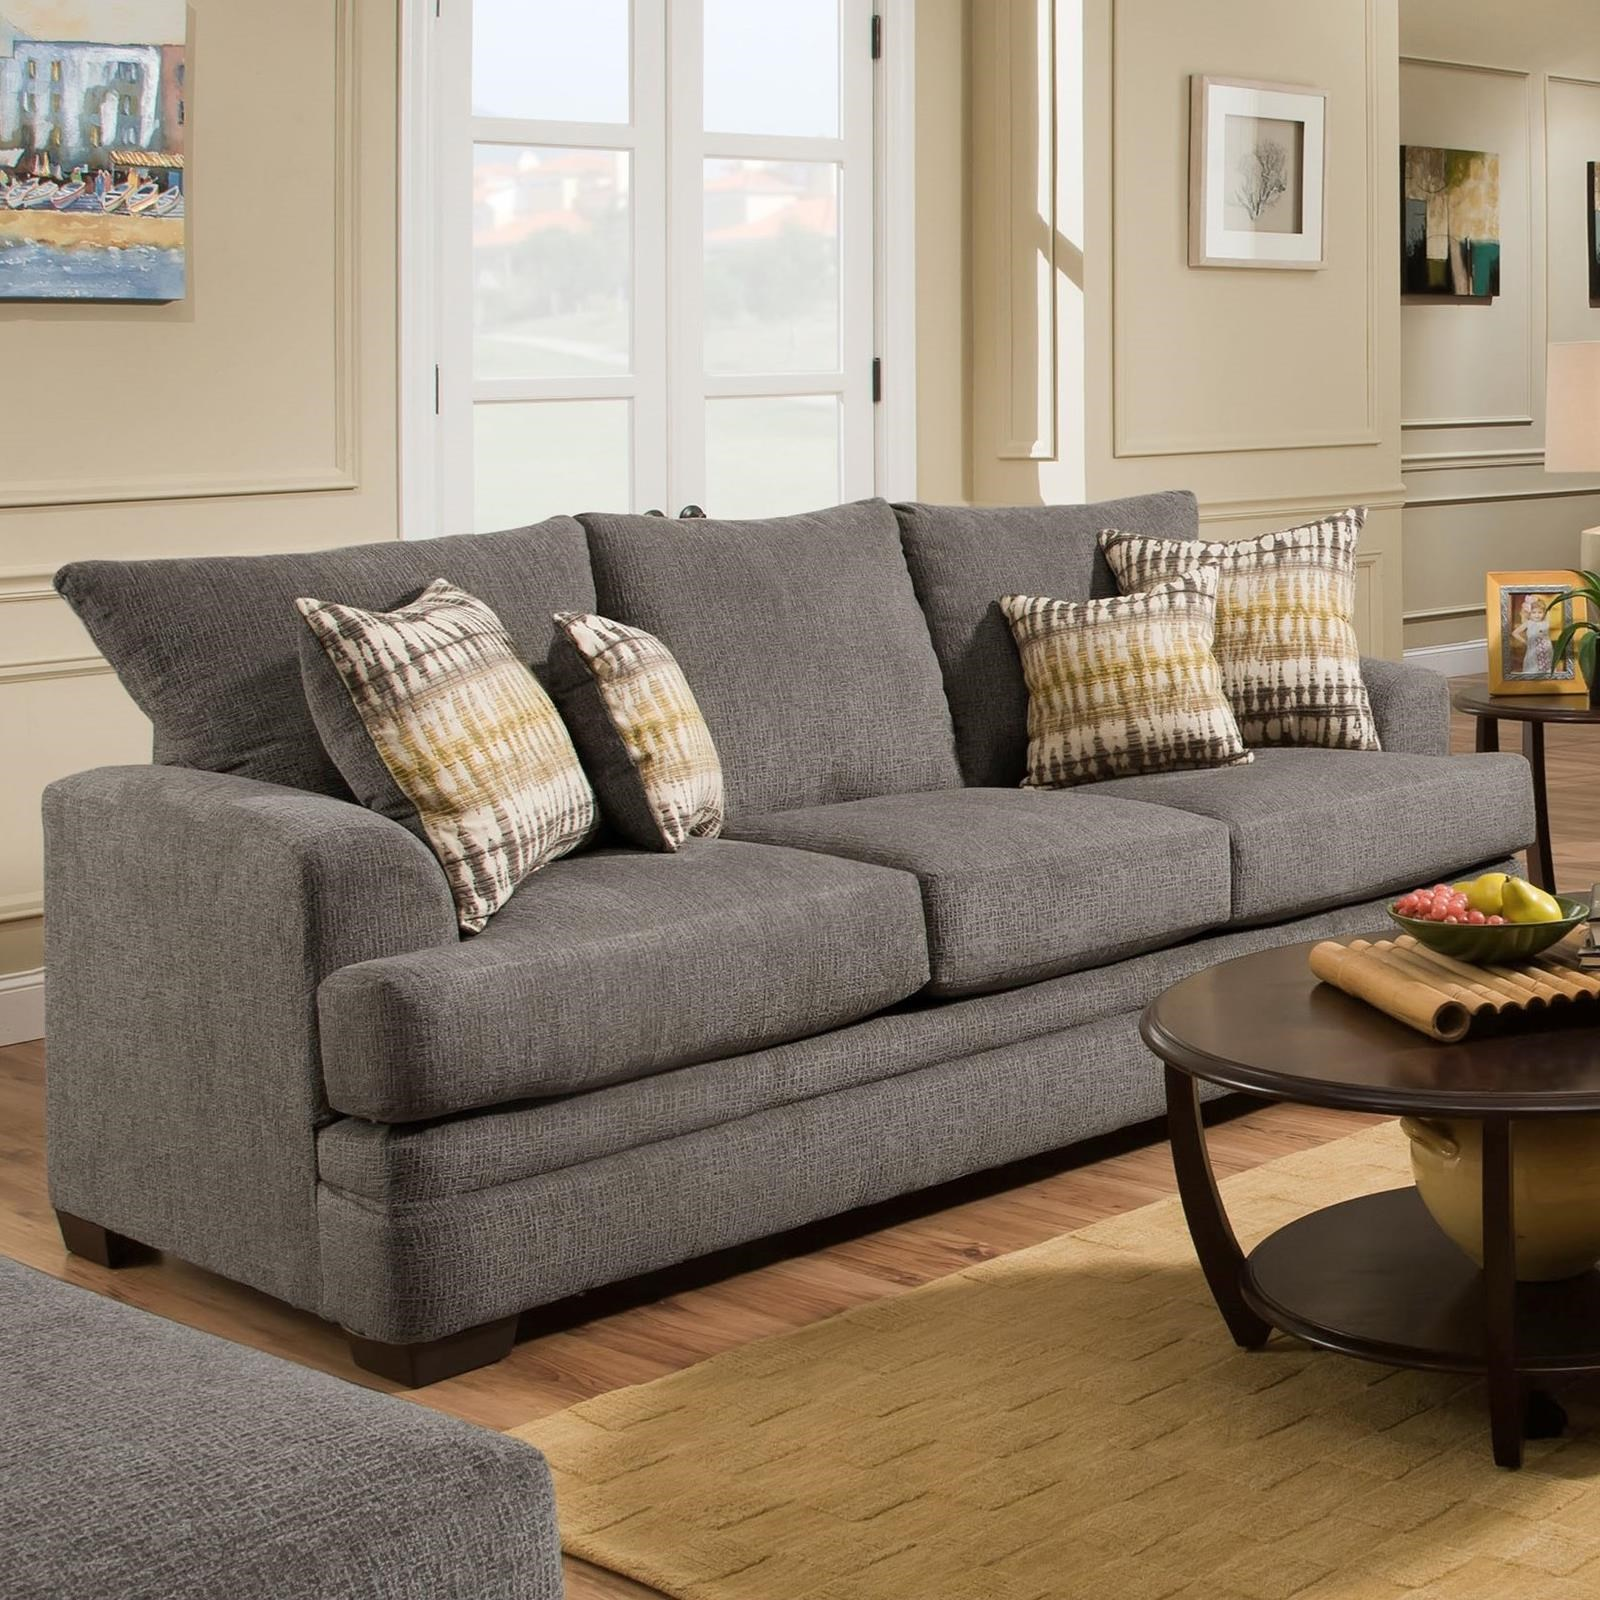 3650 Sofa by Peak Living at Prime Brothers Furniture